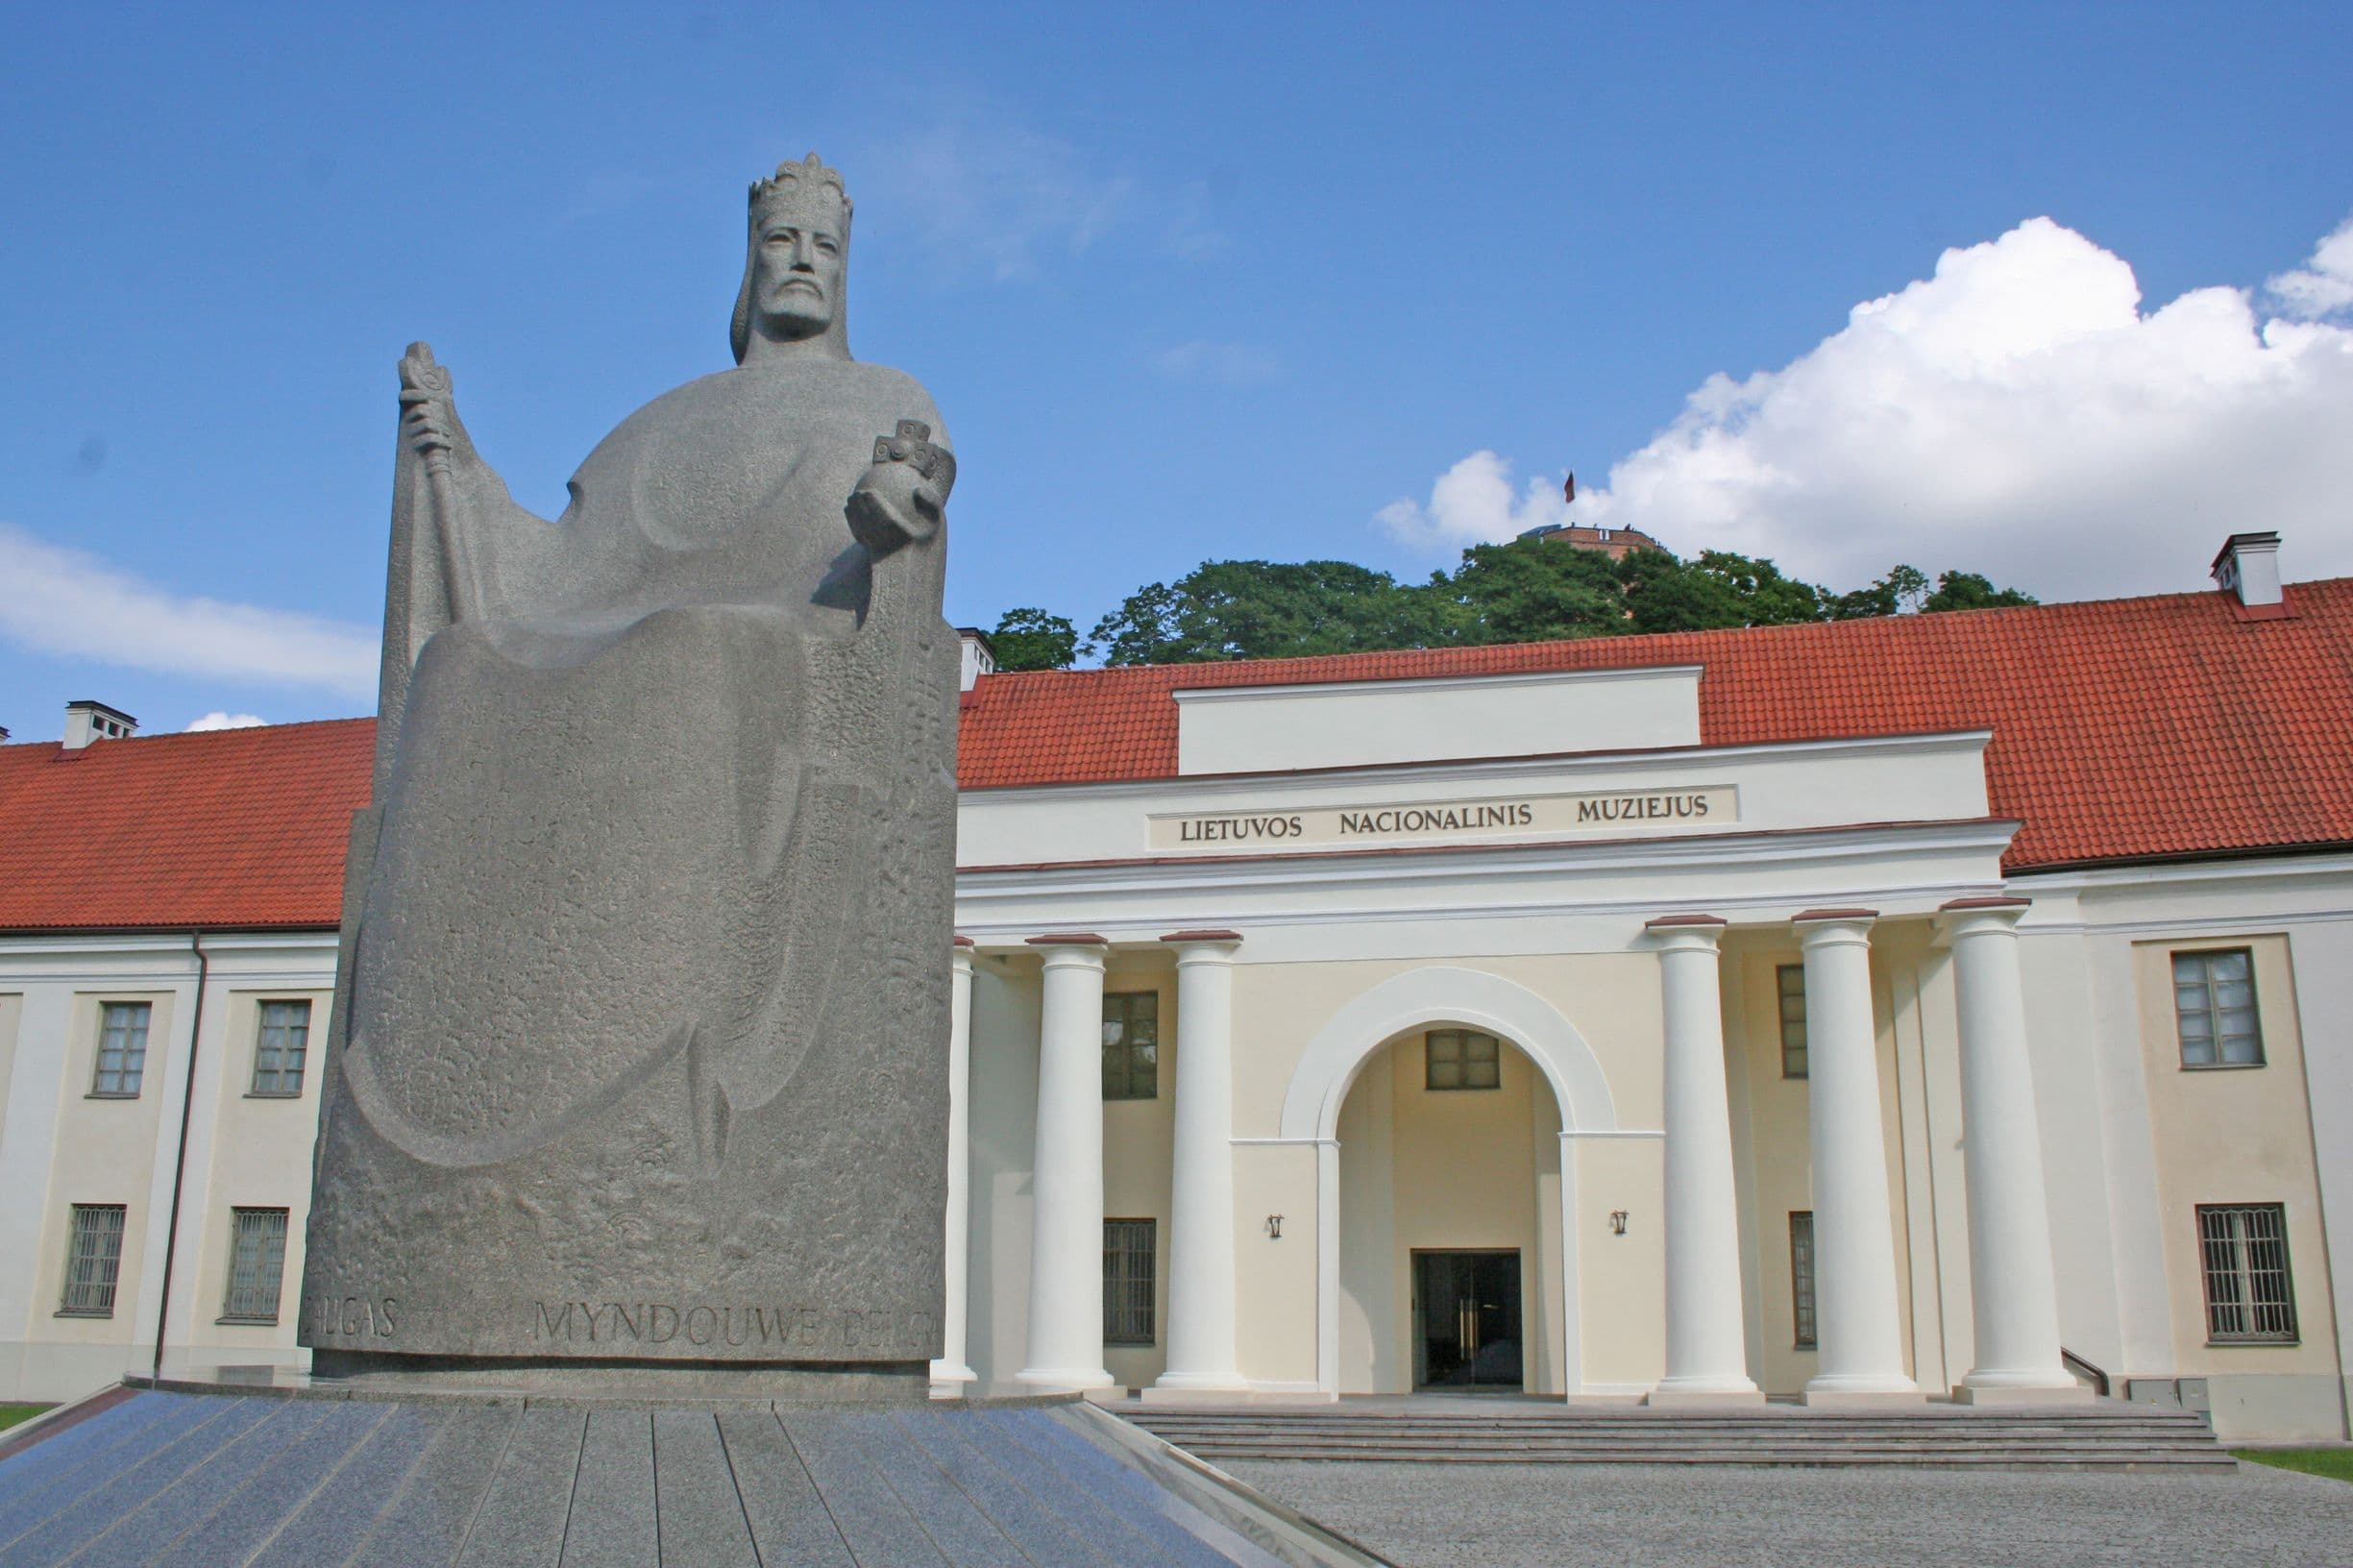 The statue of King Mindaugas in front of National Museum of Lithuania in Vilnius